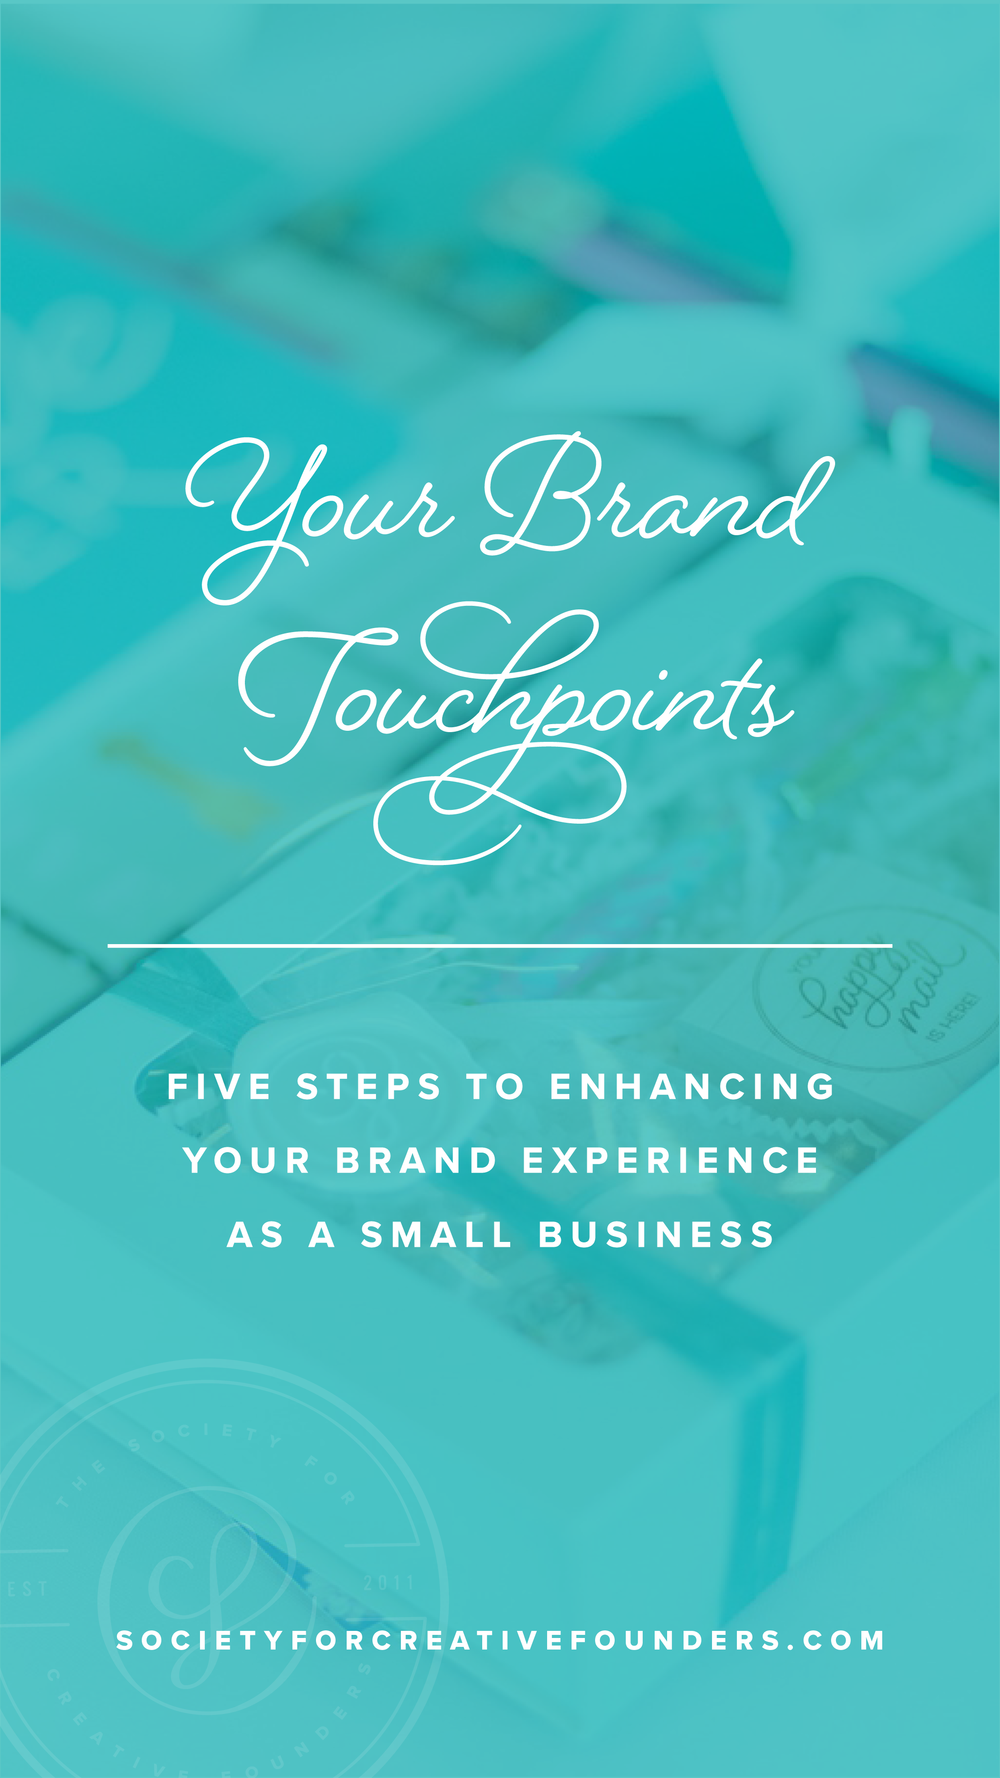 Branding Touchpoints - Elevating your Brand as a Small Business - Society for Creative Founders